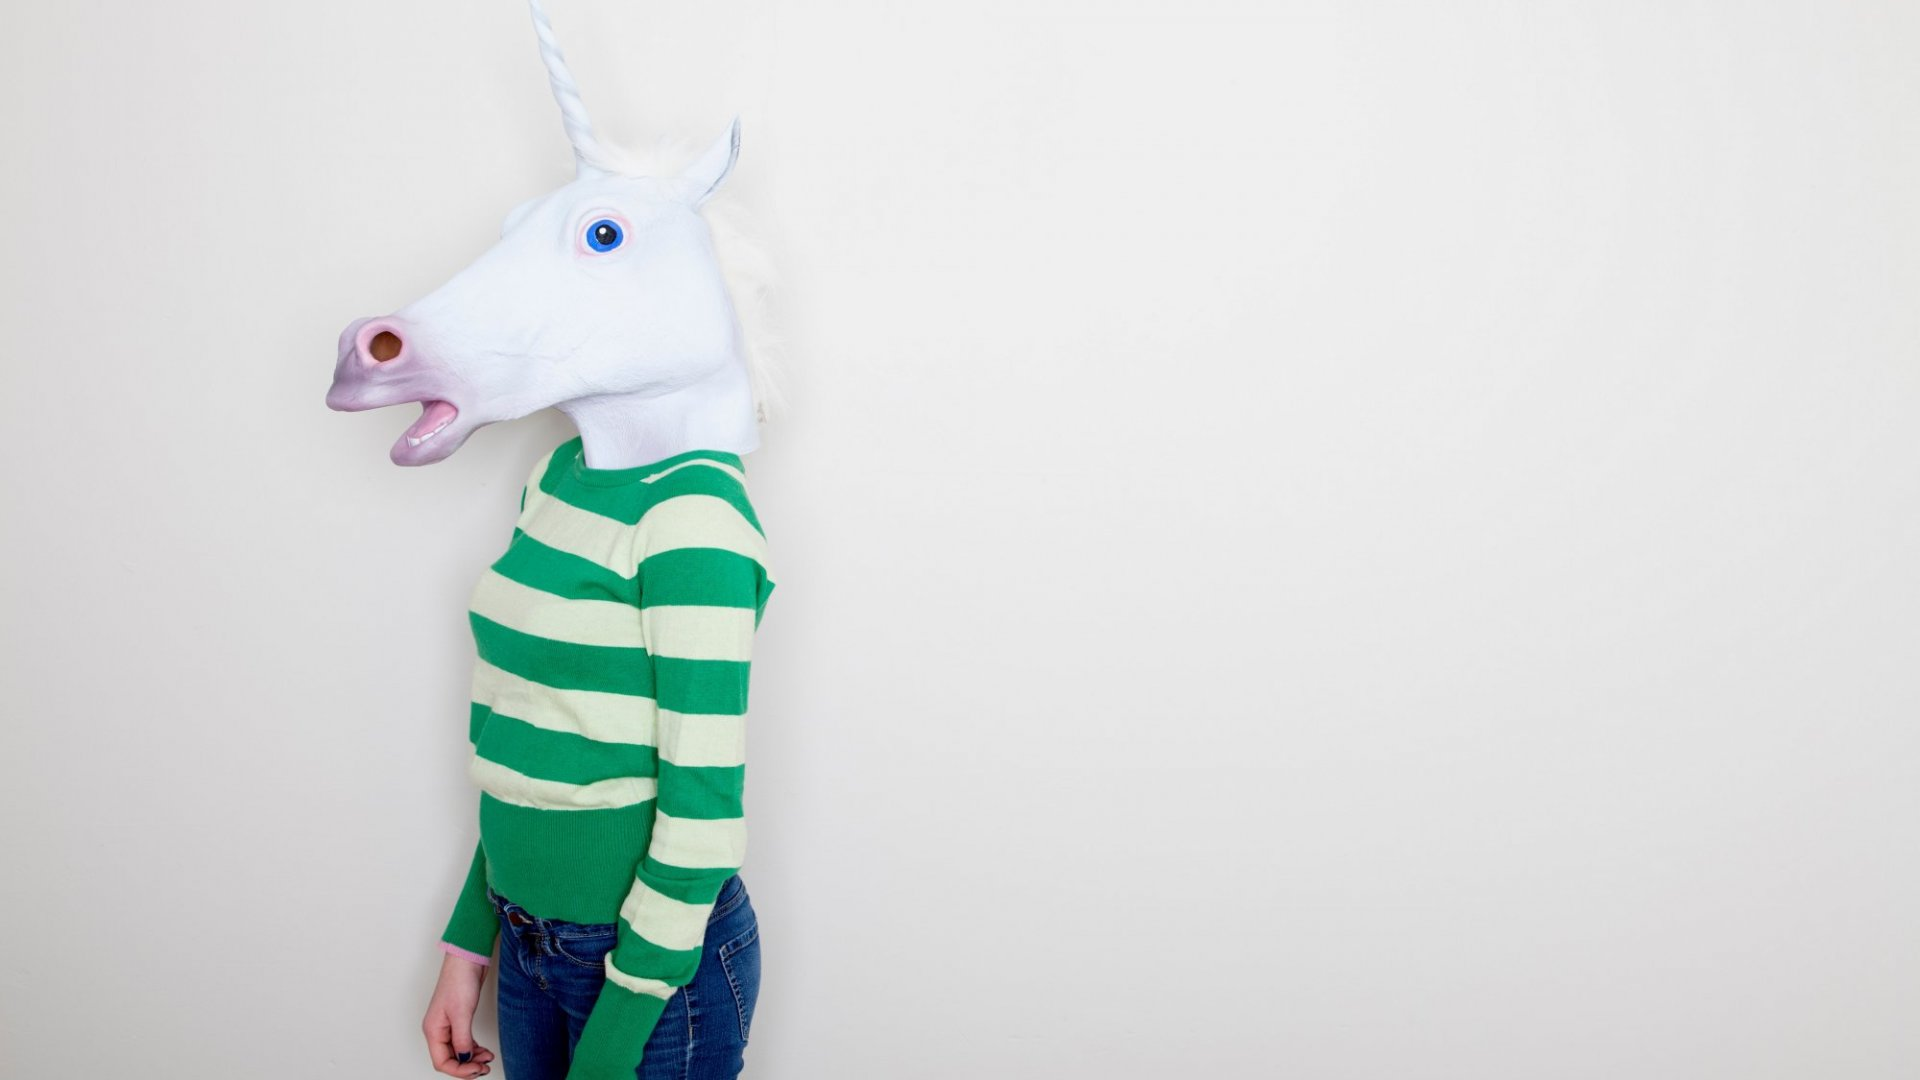 The Dirty Little Secret Behind Silicon Valley's Unicorns